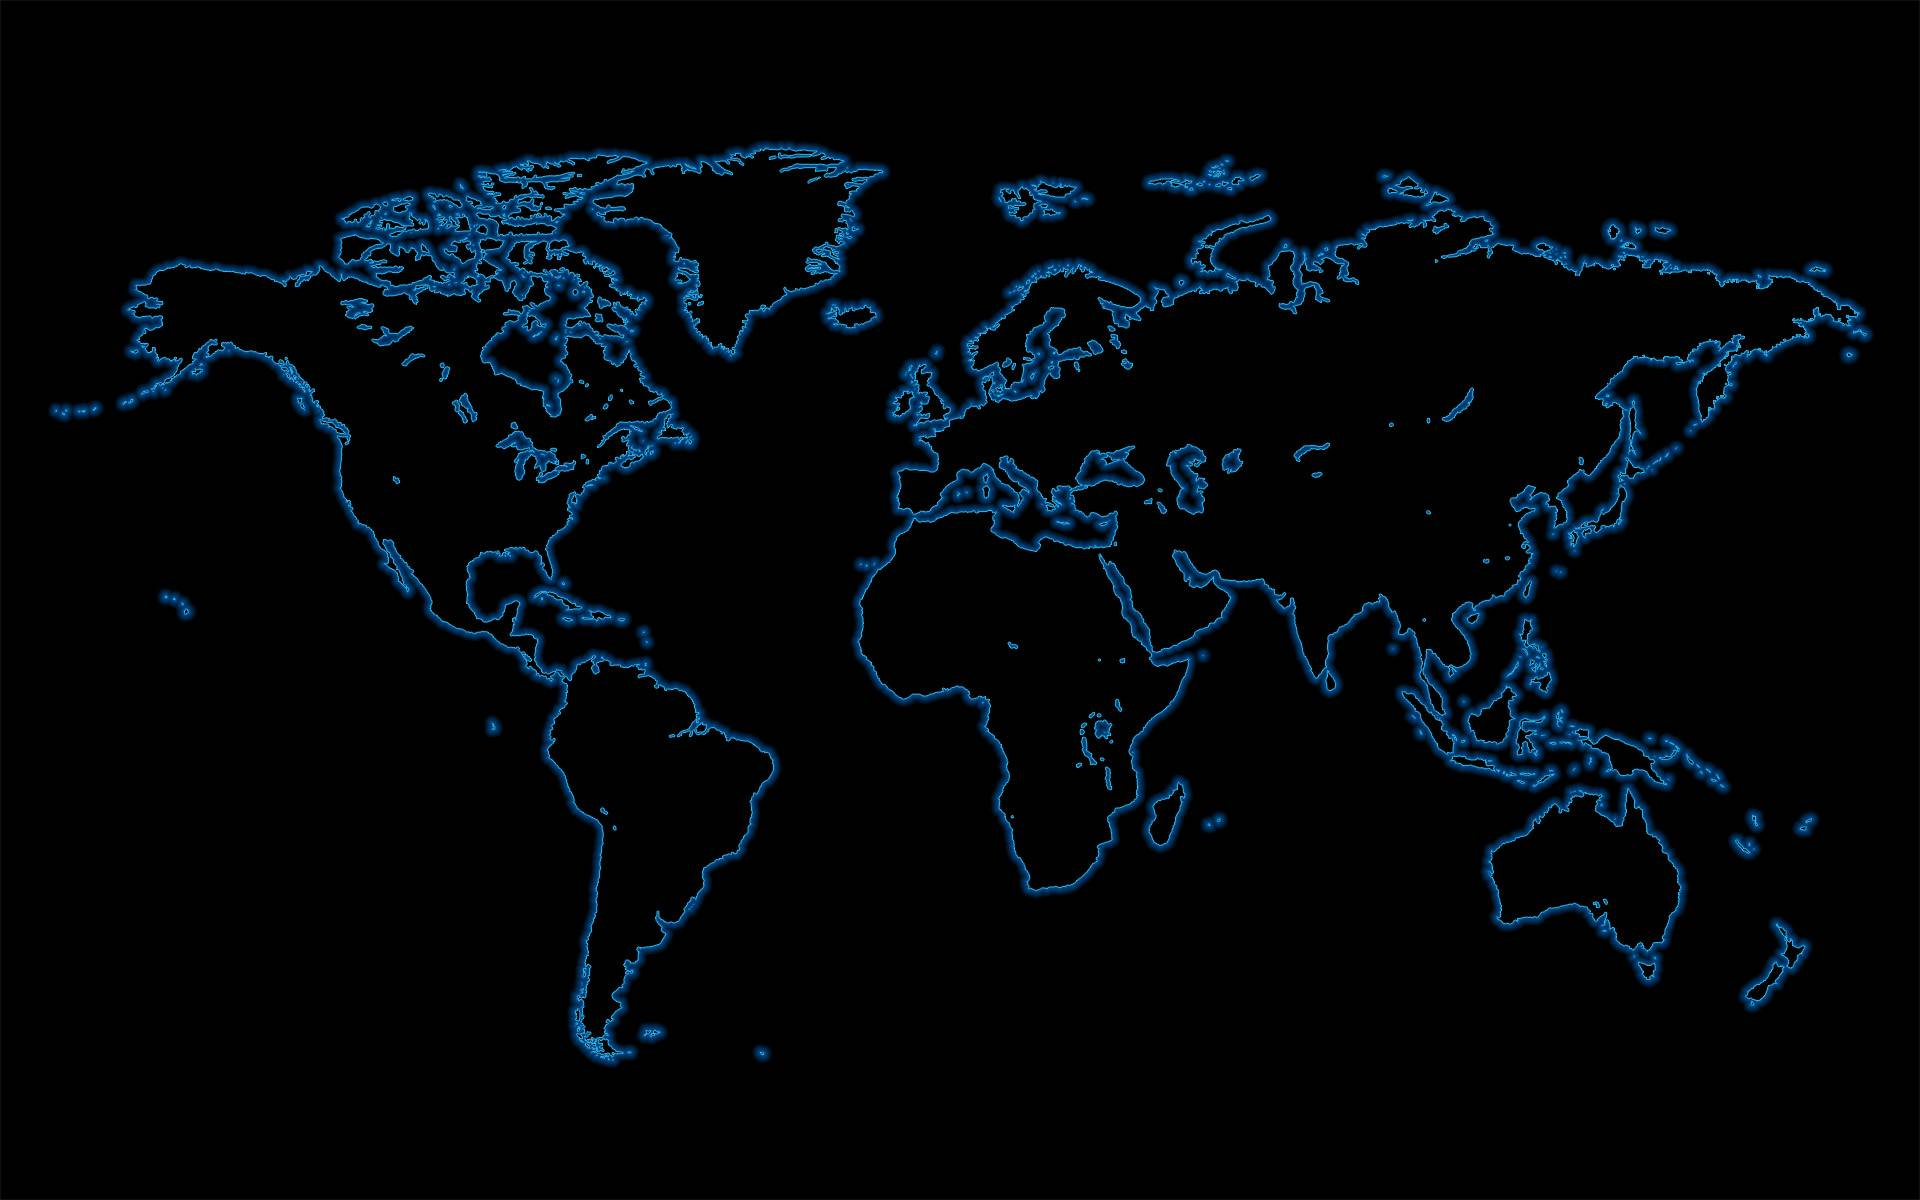 Black world map wallpapers hd for free wallpaper pic mch047722 download gumiabroncs Choice Image